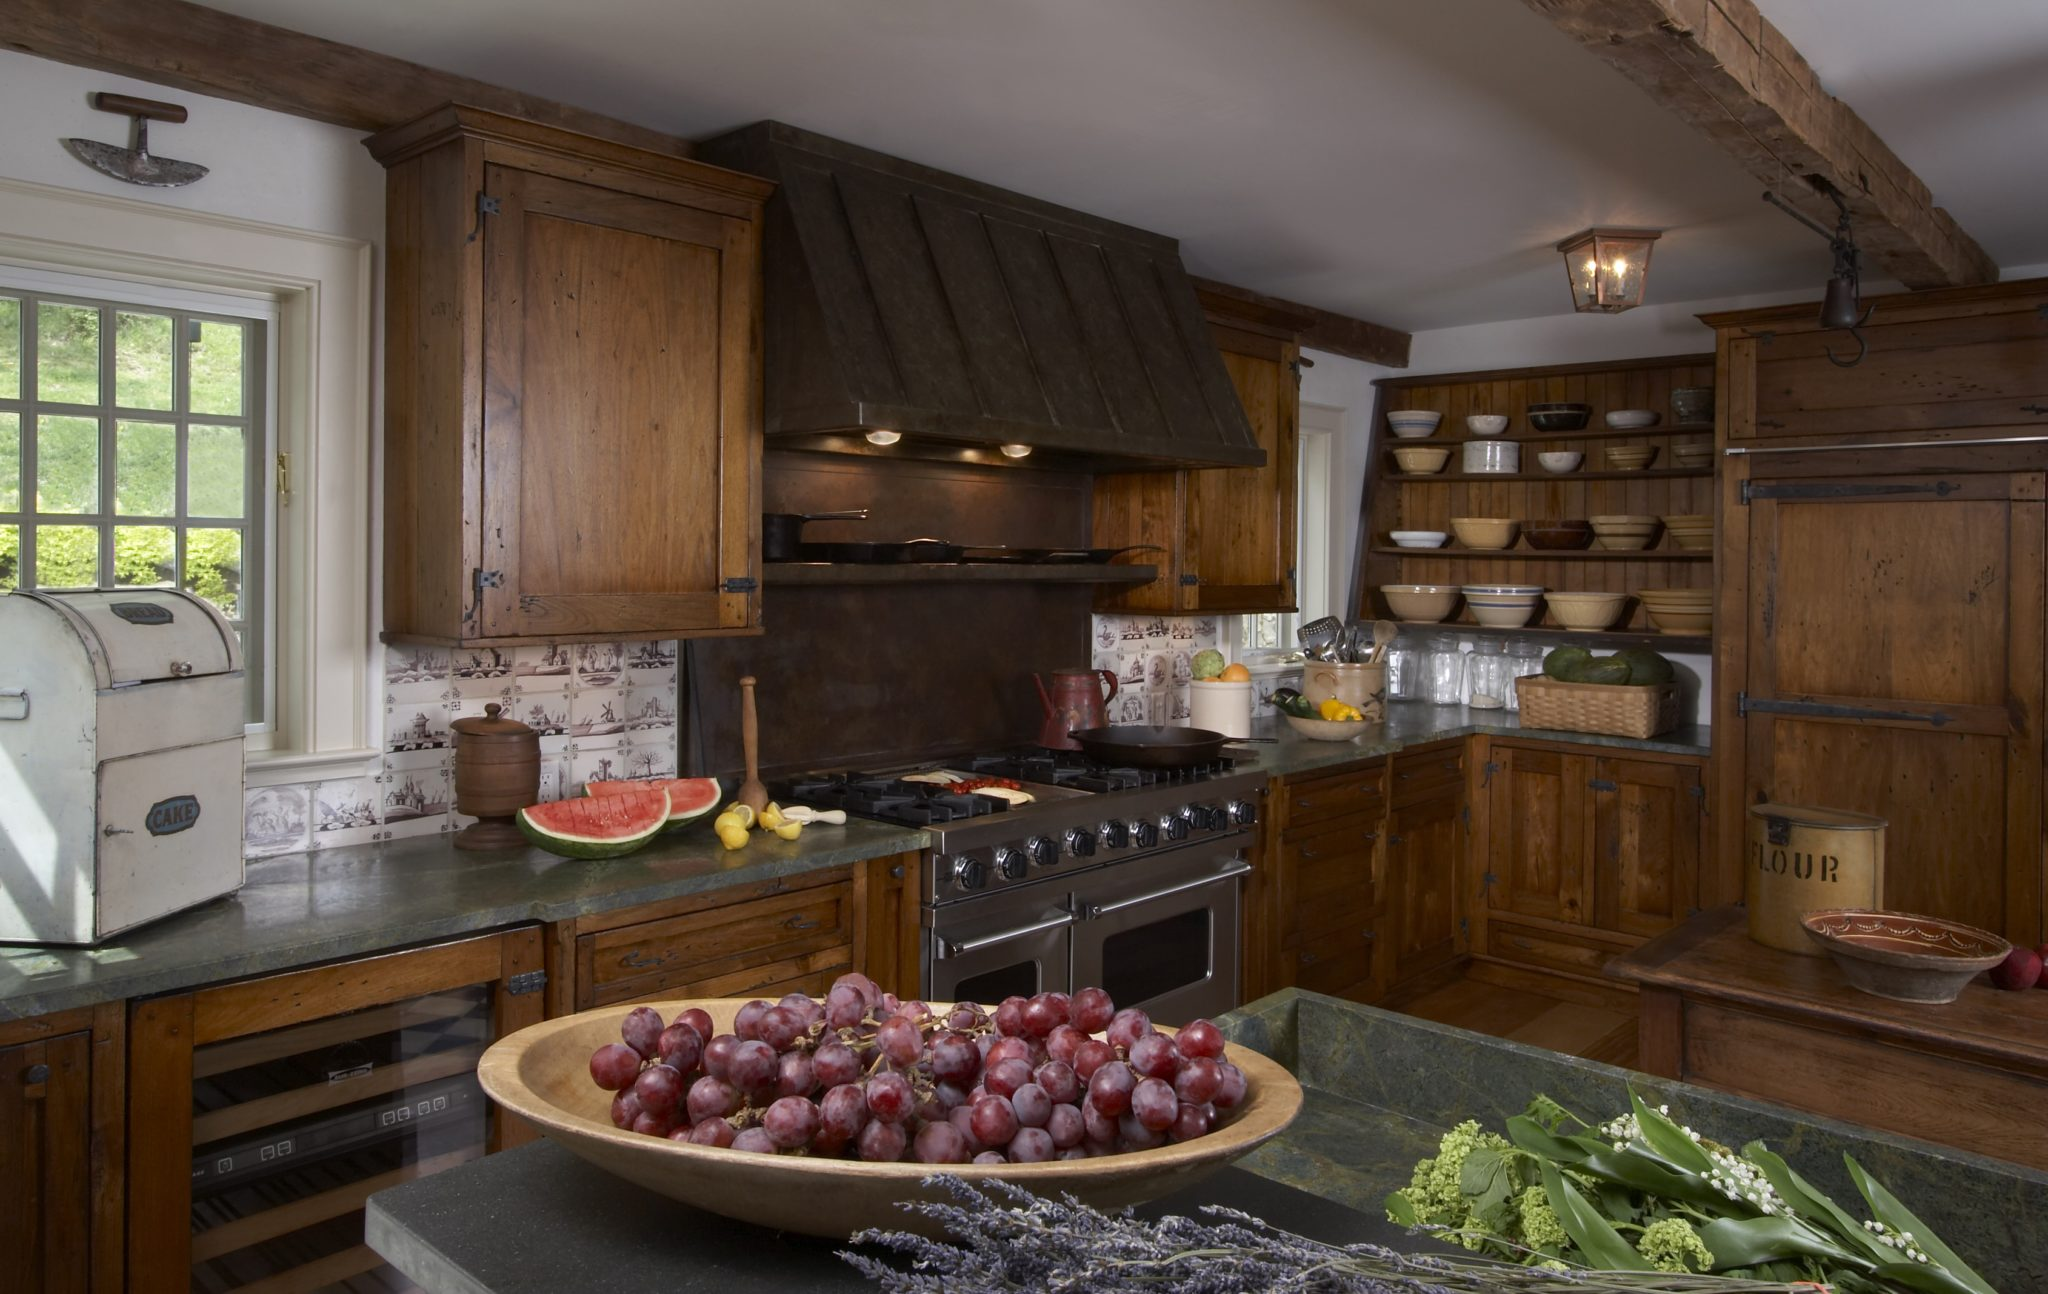 Americana kitchen - a traditional farmhouse kitchen updated for the 21st century. By Sarah Blank Design Studio